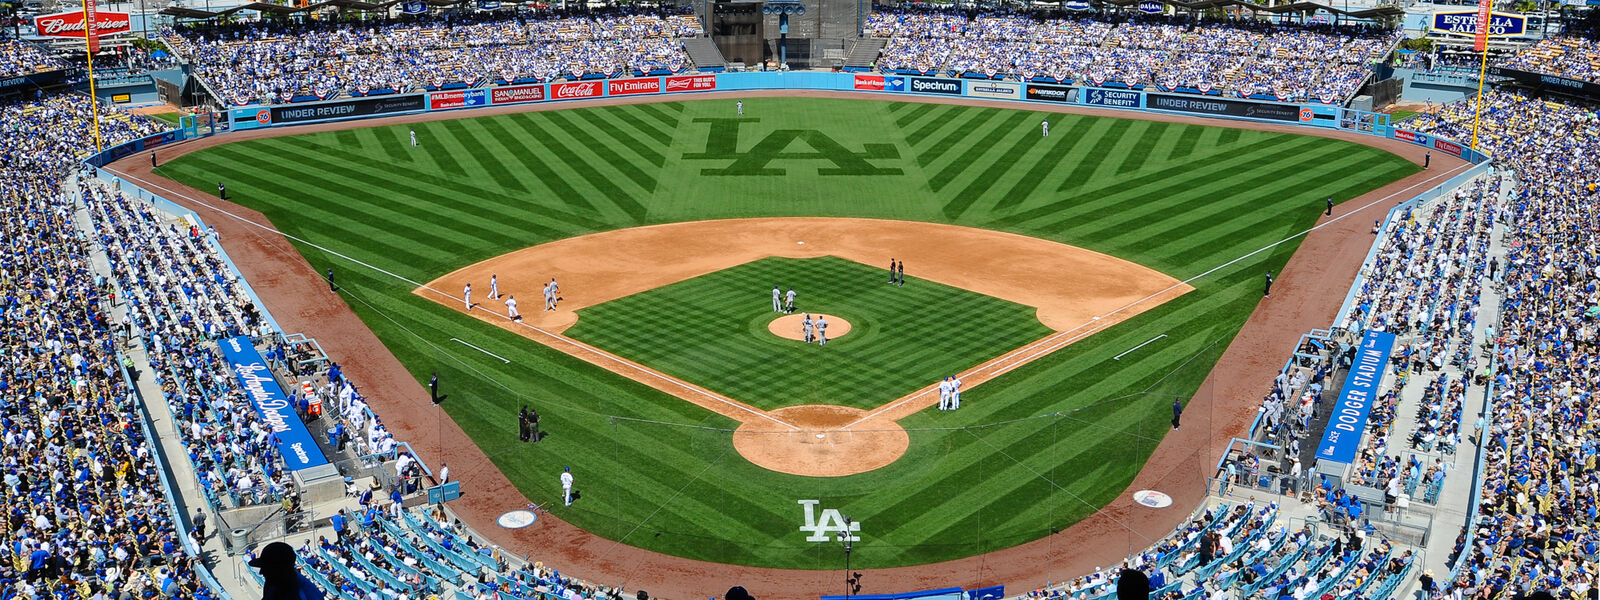 San Diego Padres at Los Angeles Dodgers Tickets (Fireworks)